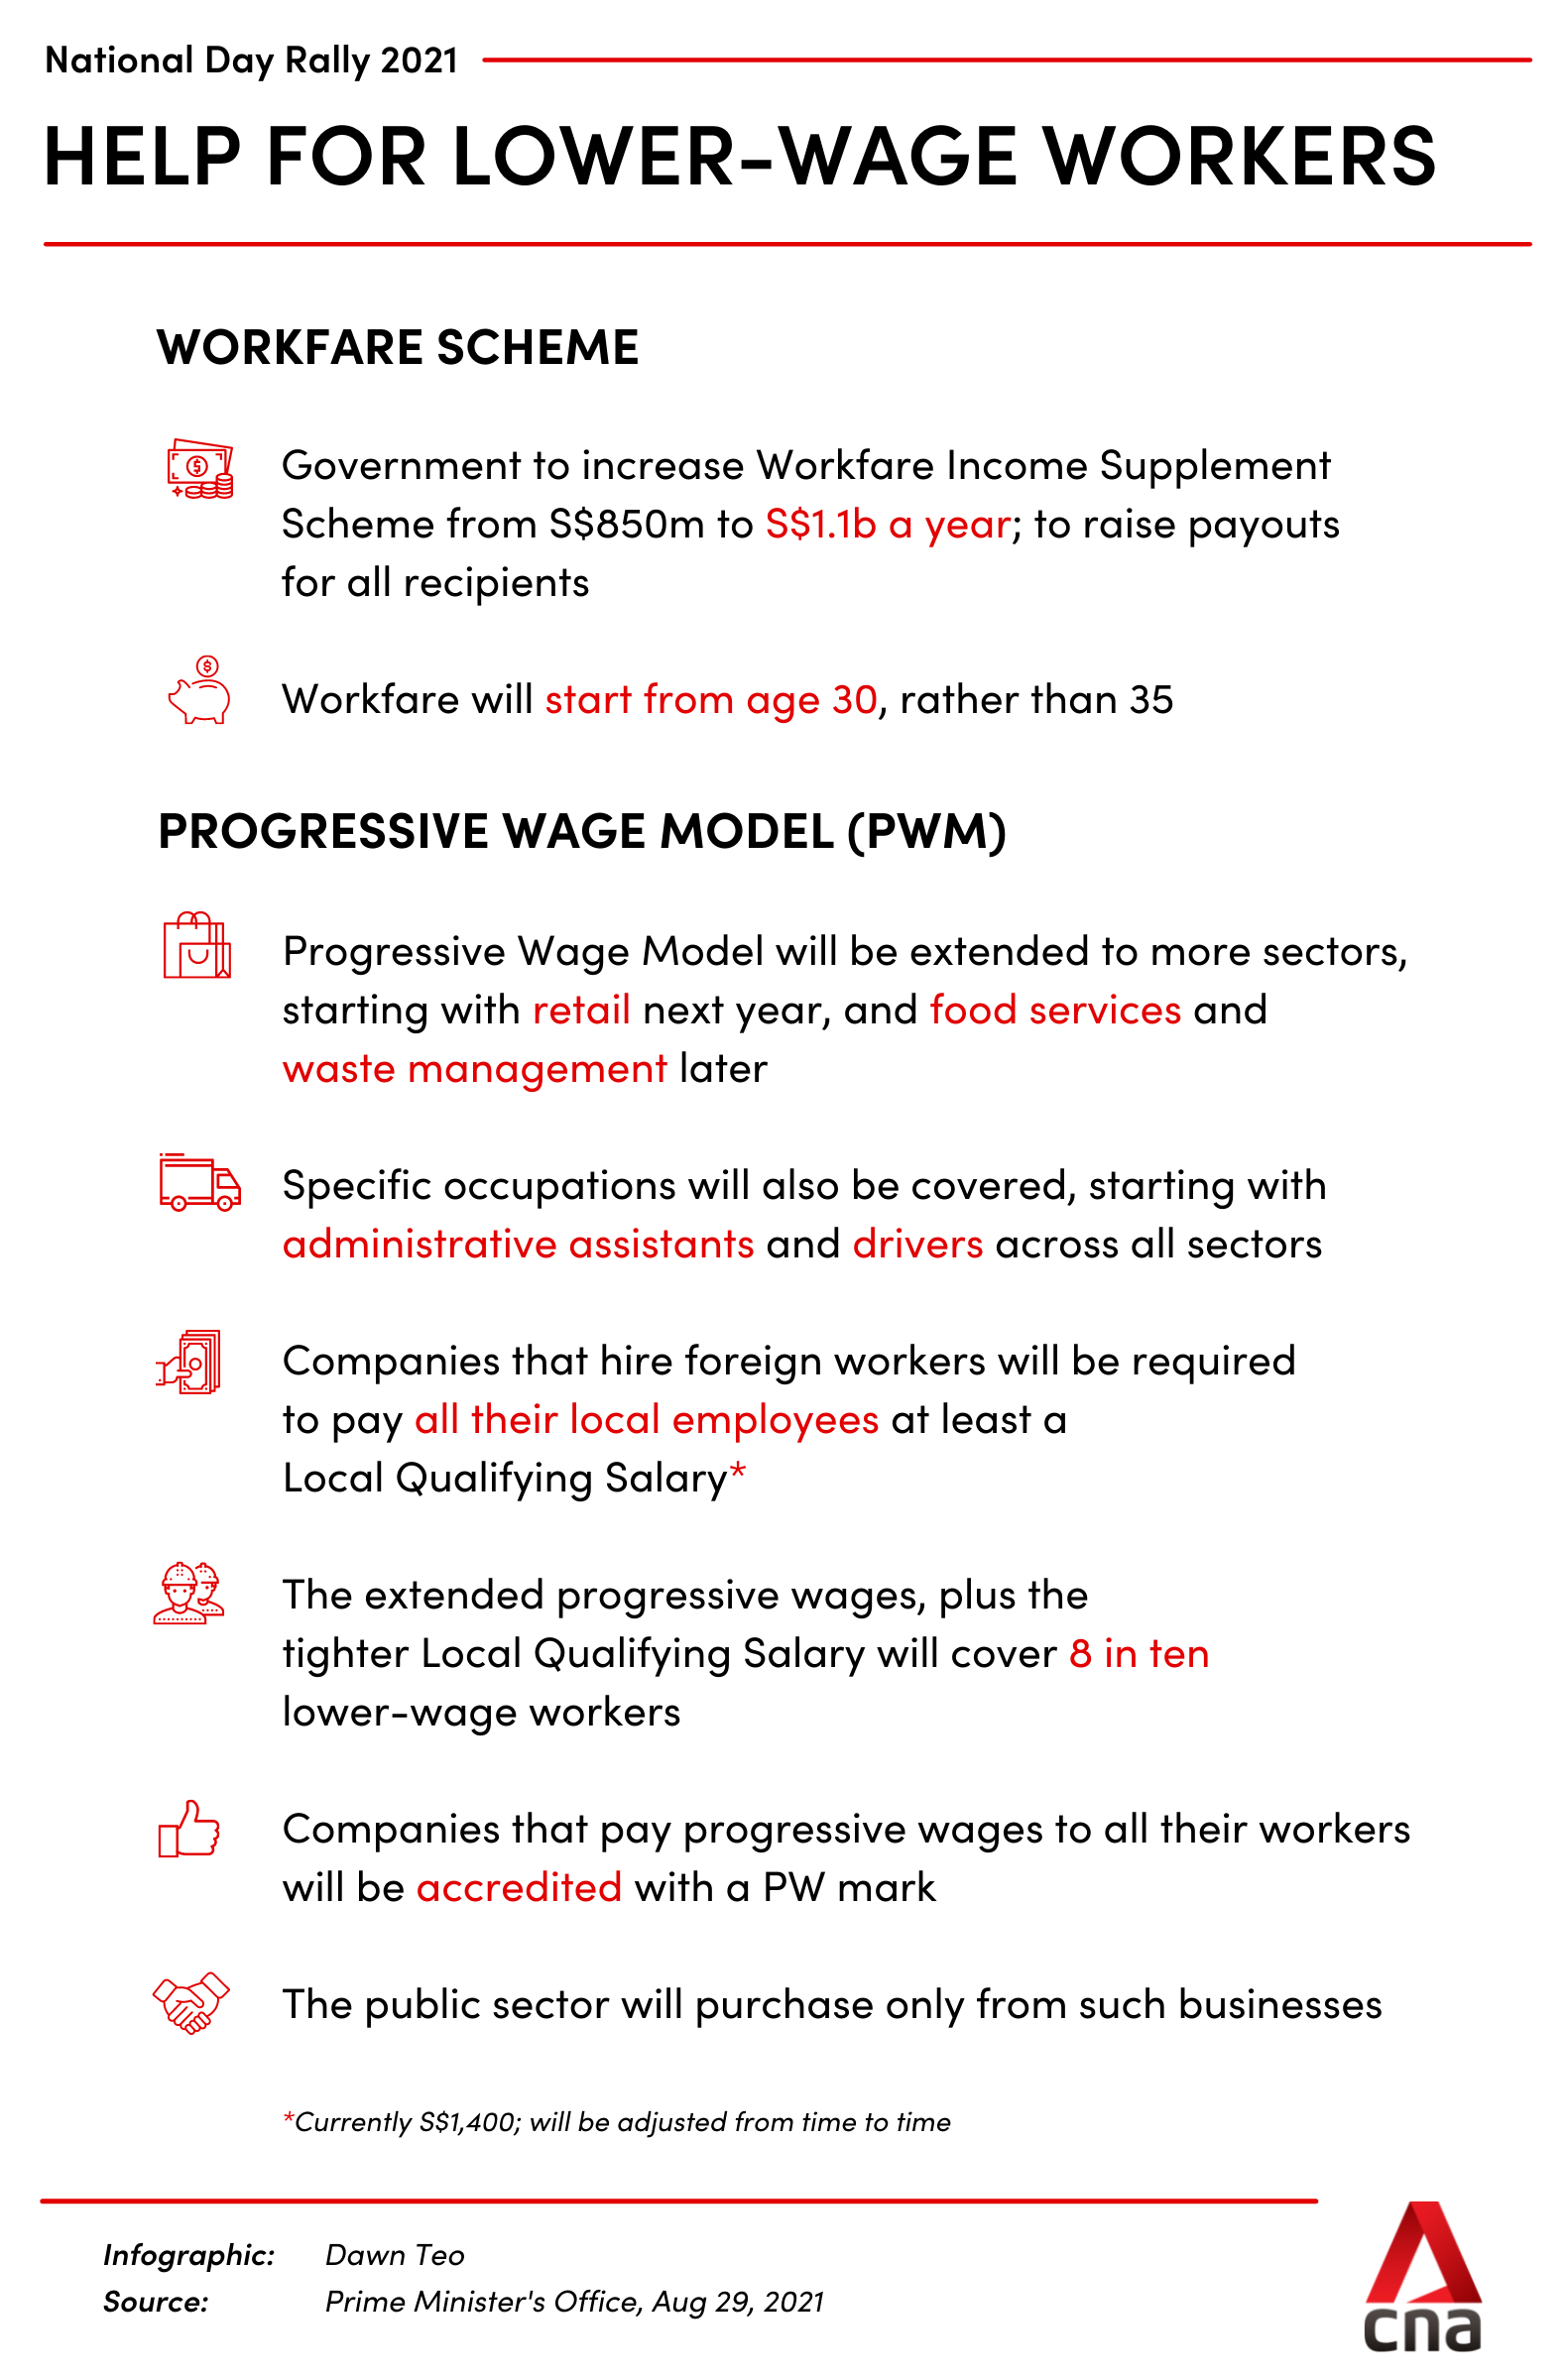 help for lower wage workers ndr 2021